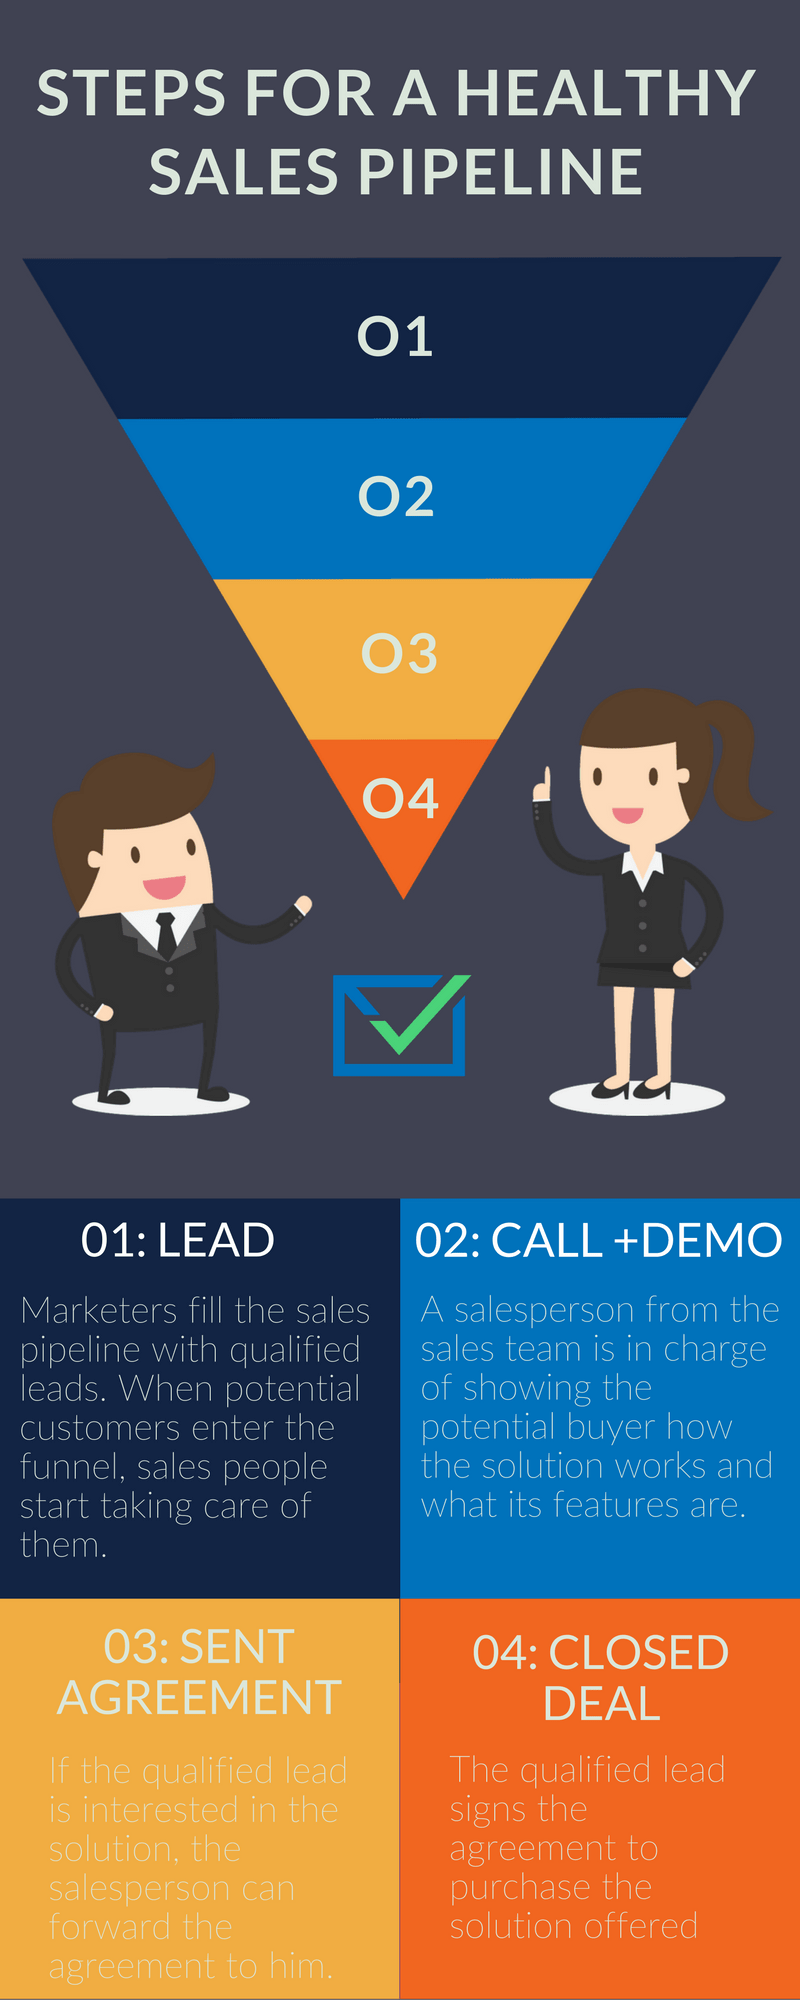 B2B sales tips and tricks for convert cold leads to close deals | RightHello